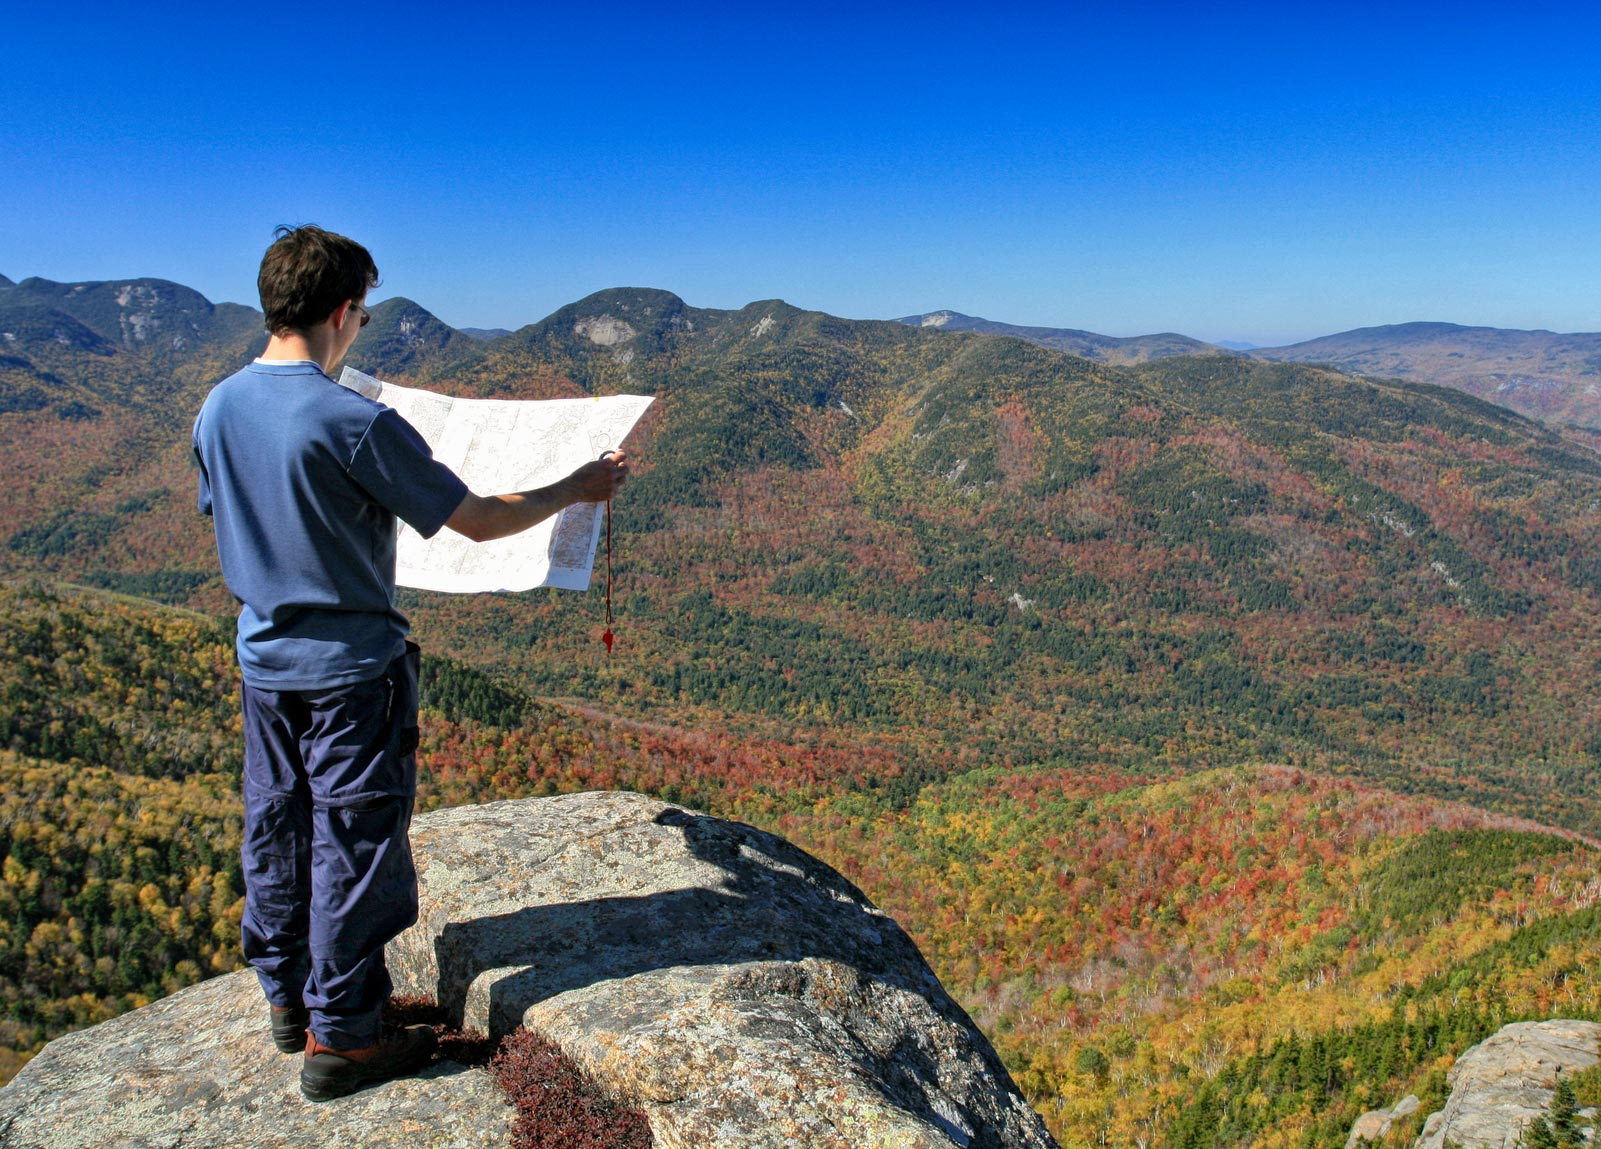 adirondack mountains - adirondacks resorts